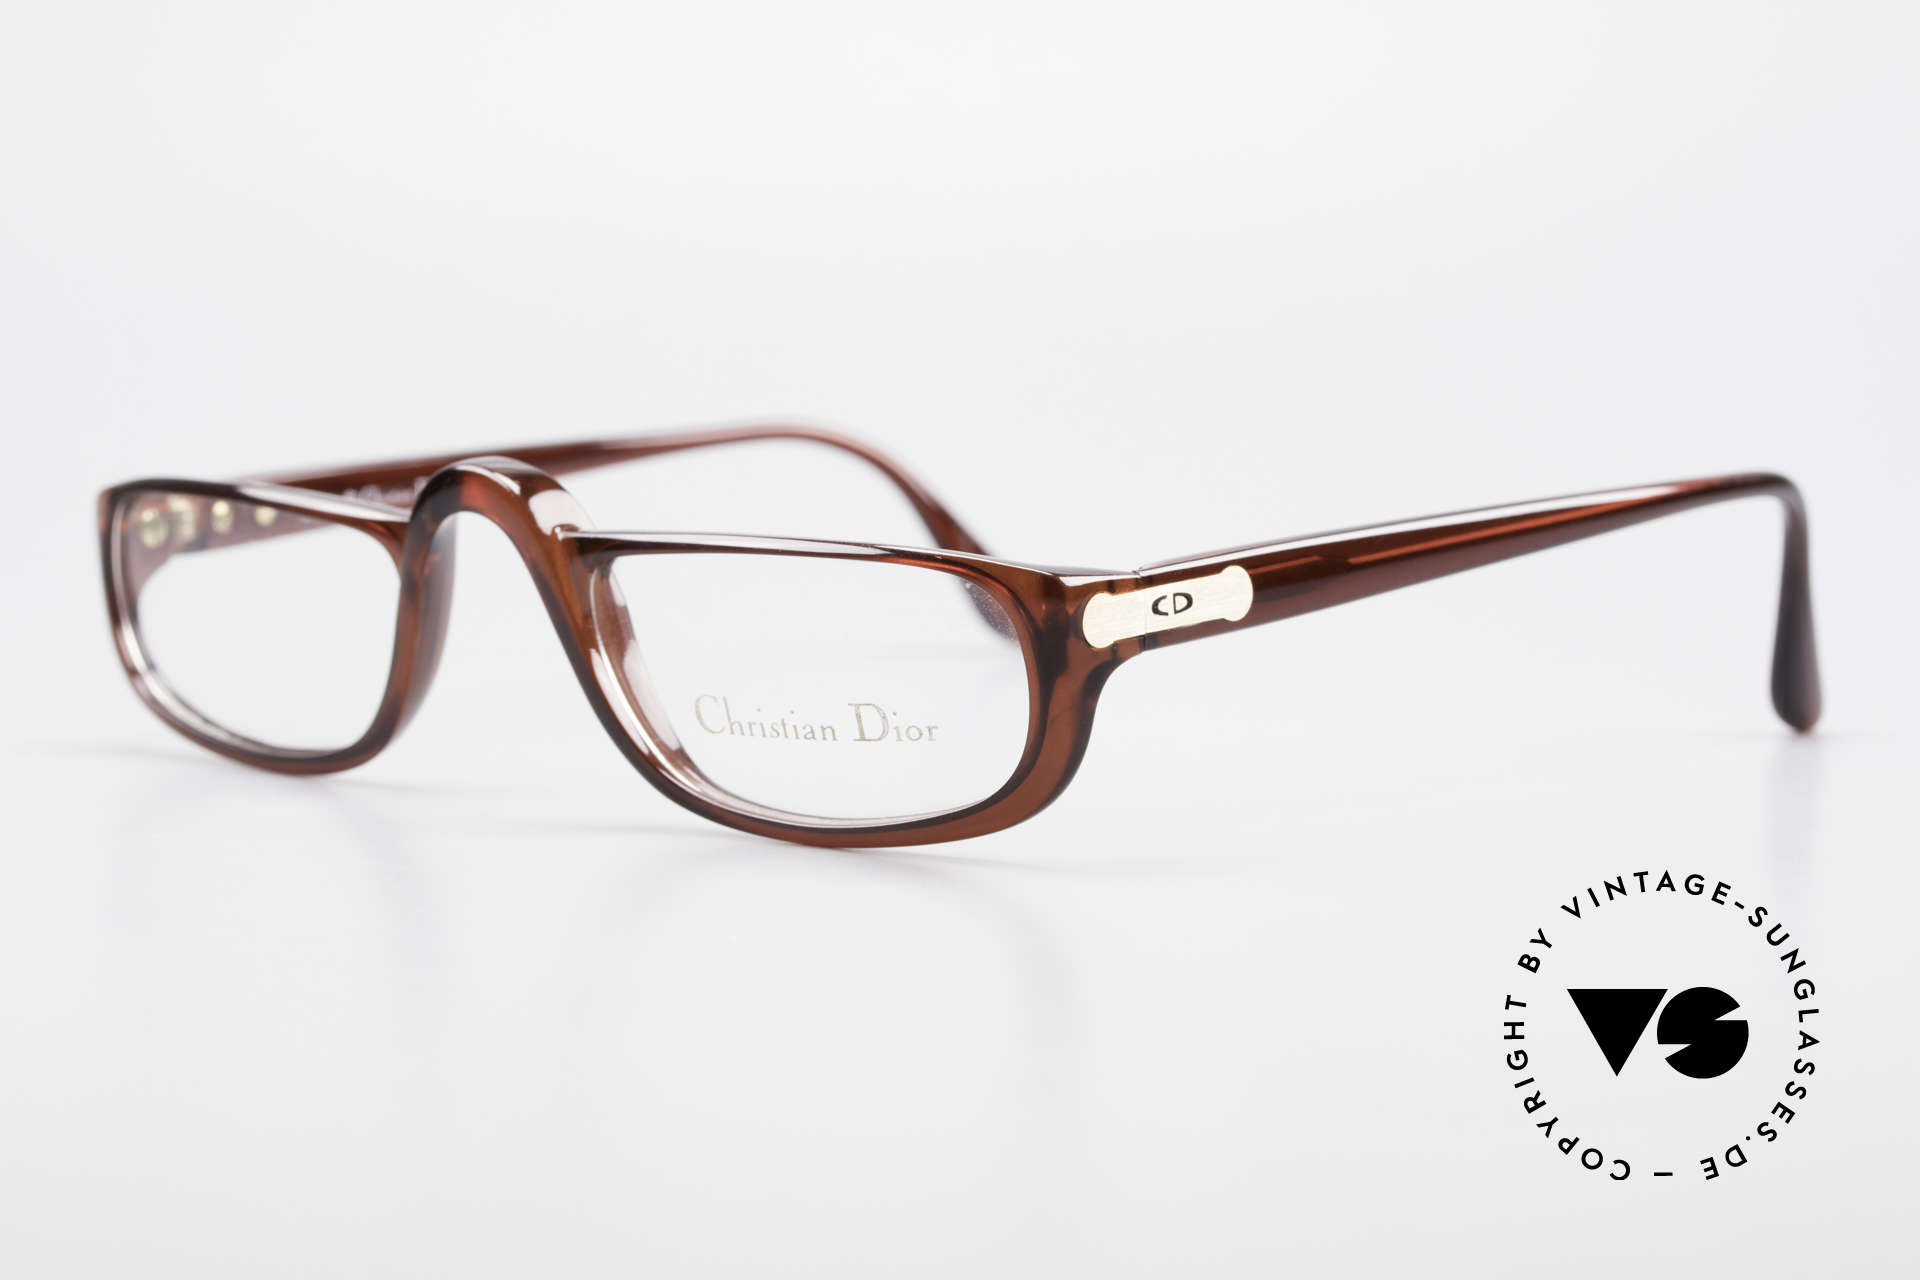 Christian Dior 2075 Reading Glasses Large Optyl, superior quality, fine materials & durability by Optyl, Made for Men and Women